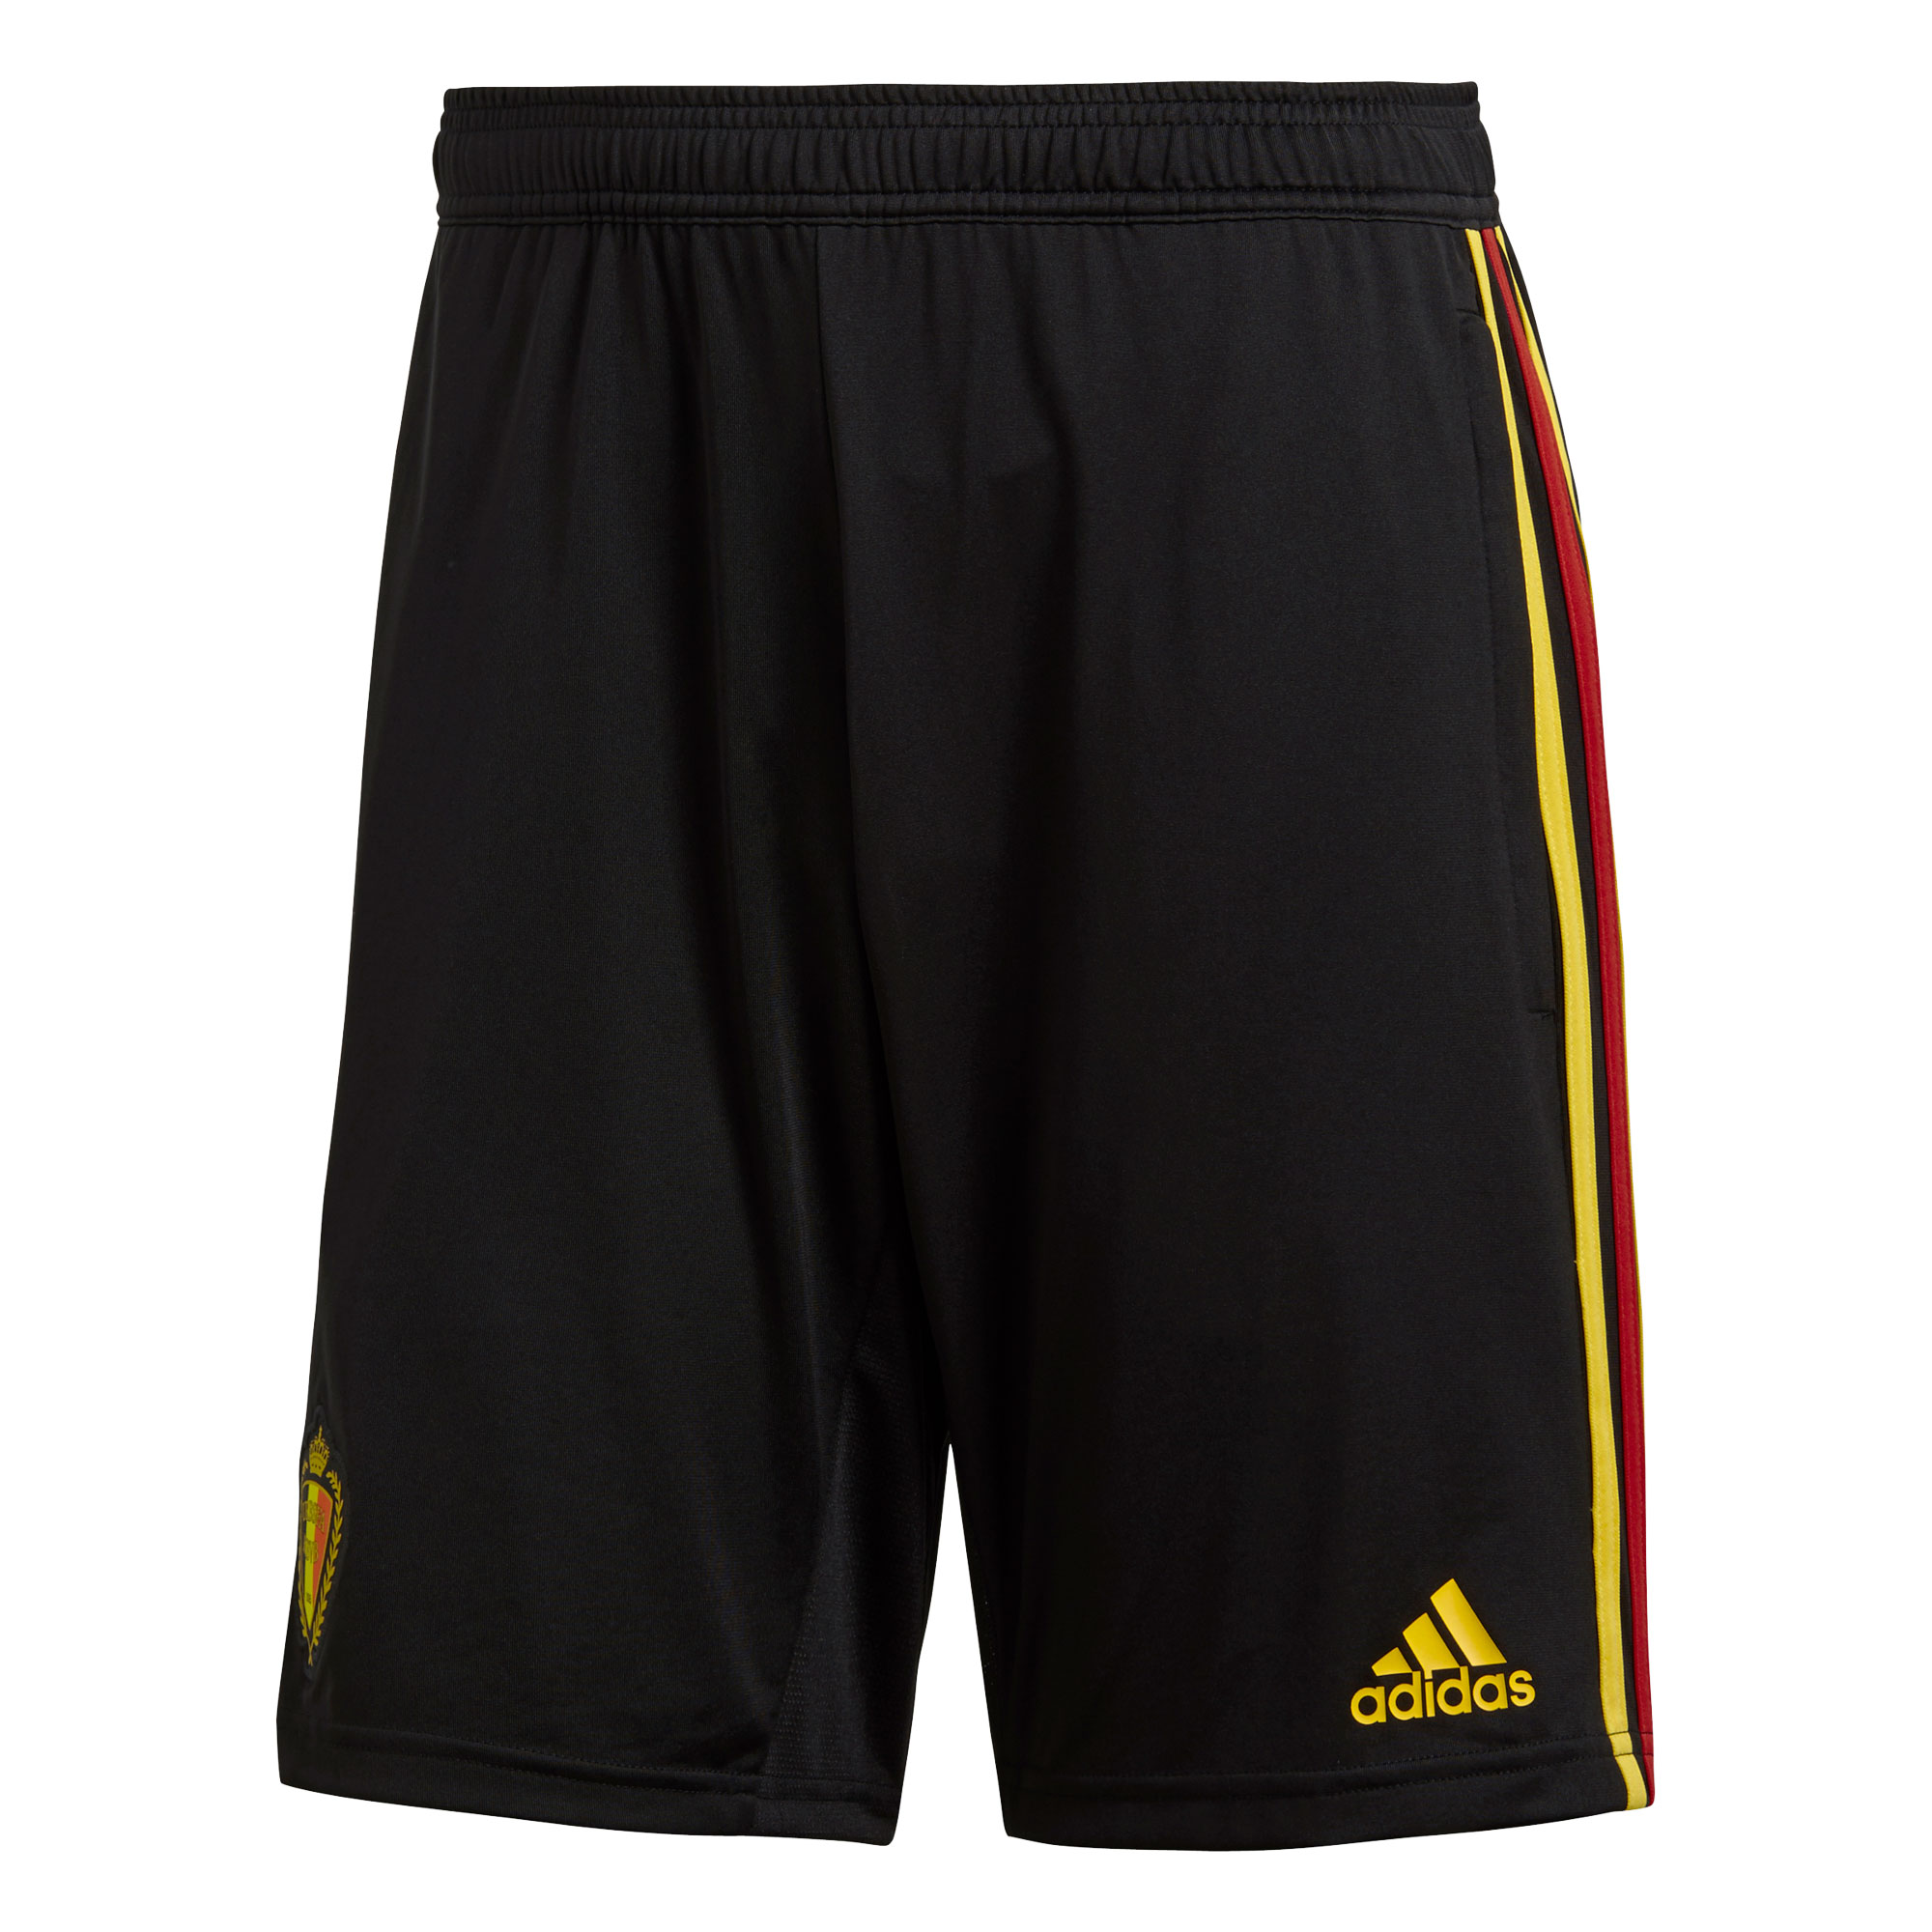 Belgium Training Shorts 2018 / 2019 - Black/Gold - 54